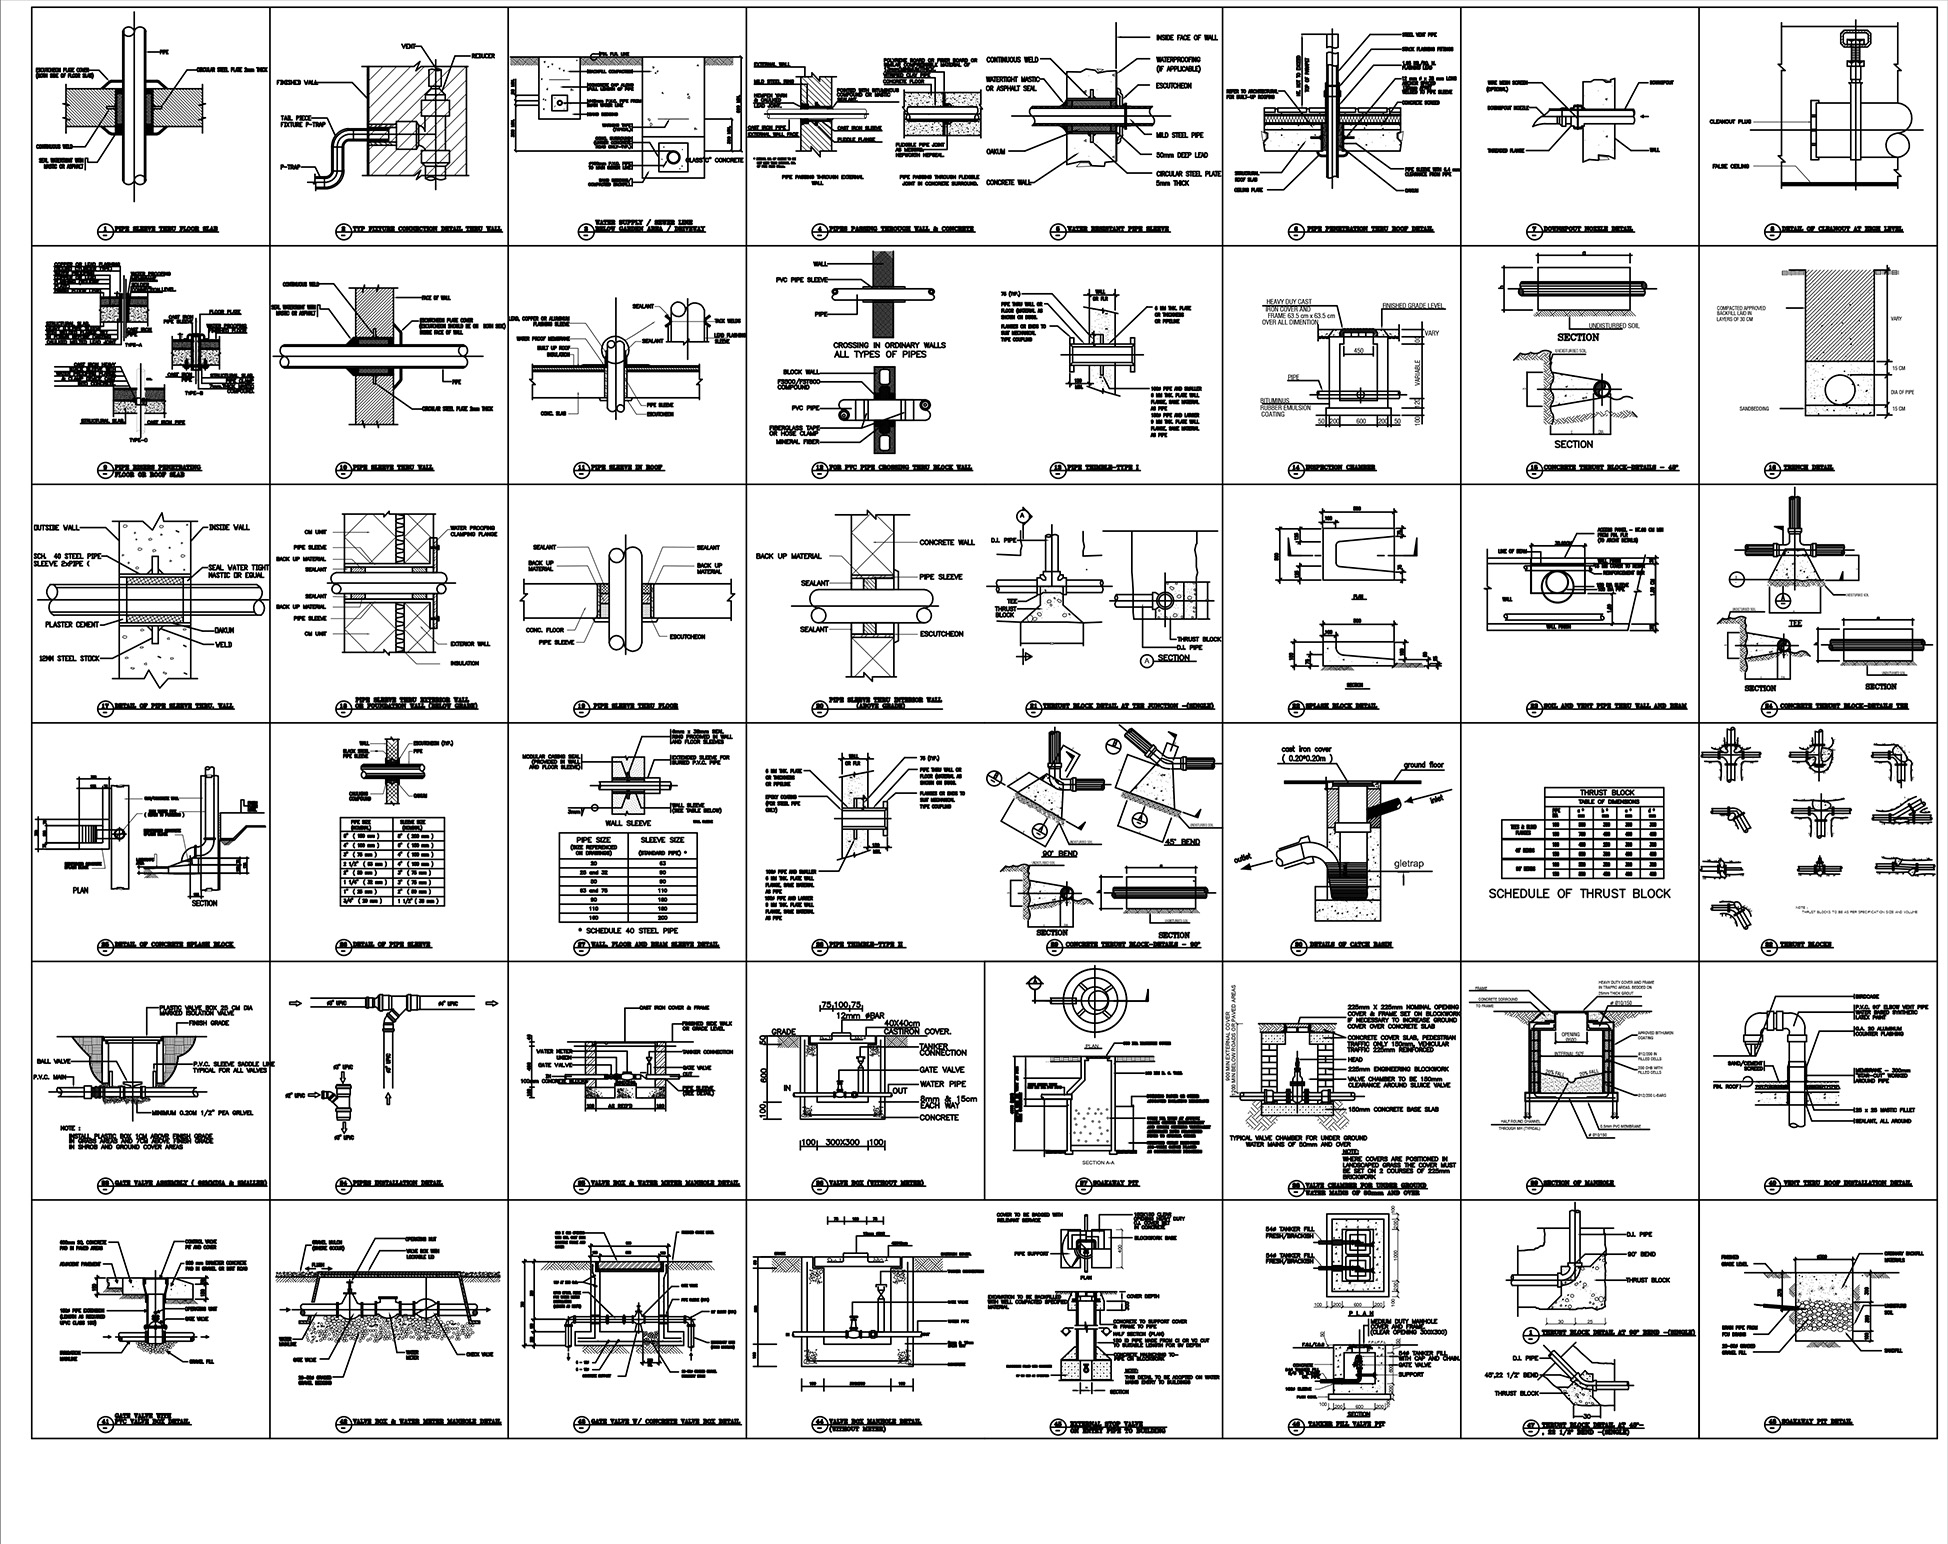 Plumbing Typical Details Part 01 Piping Layout Autocad 1